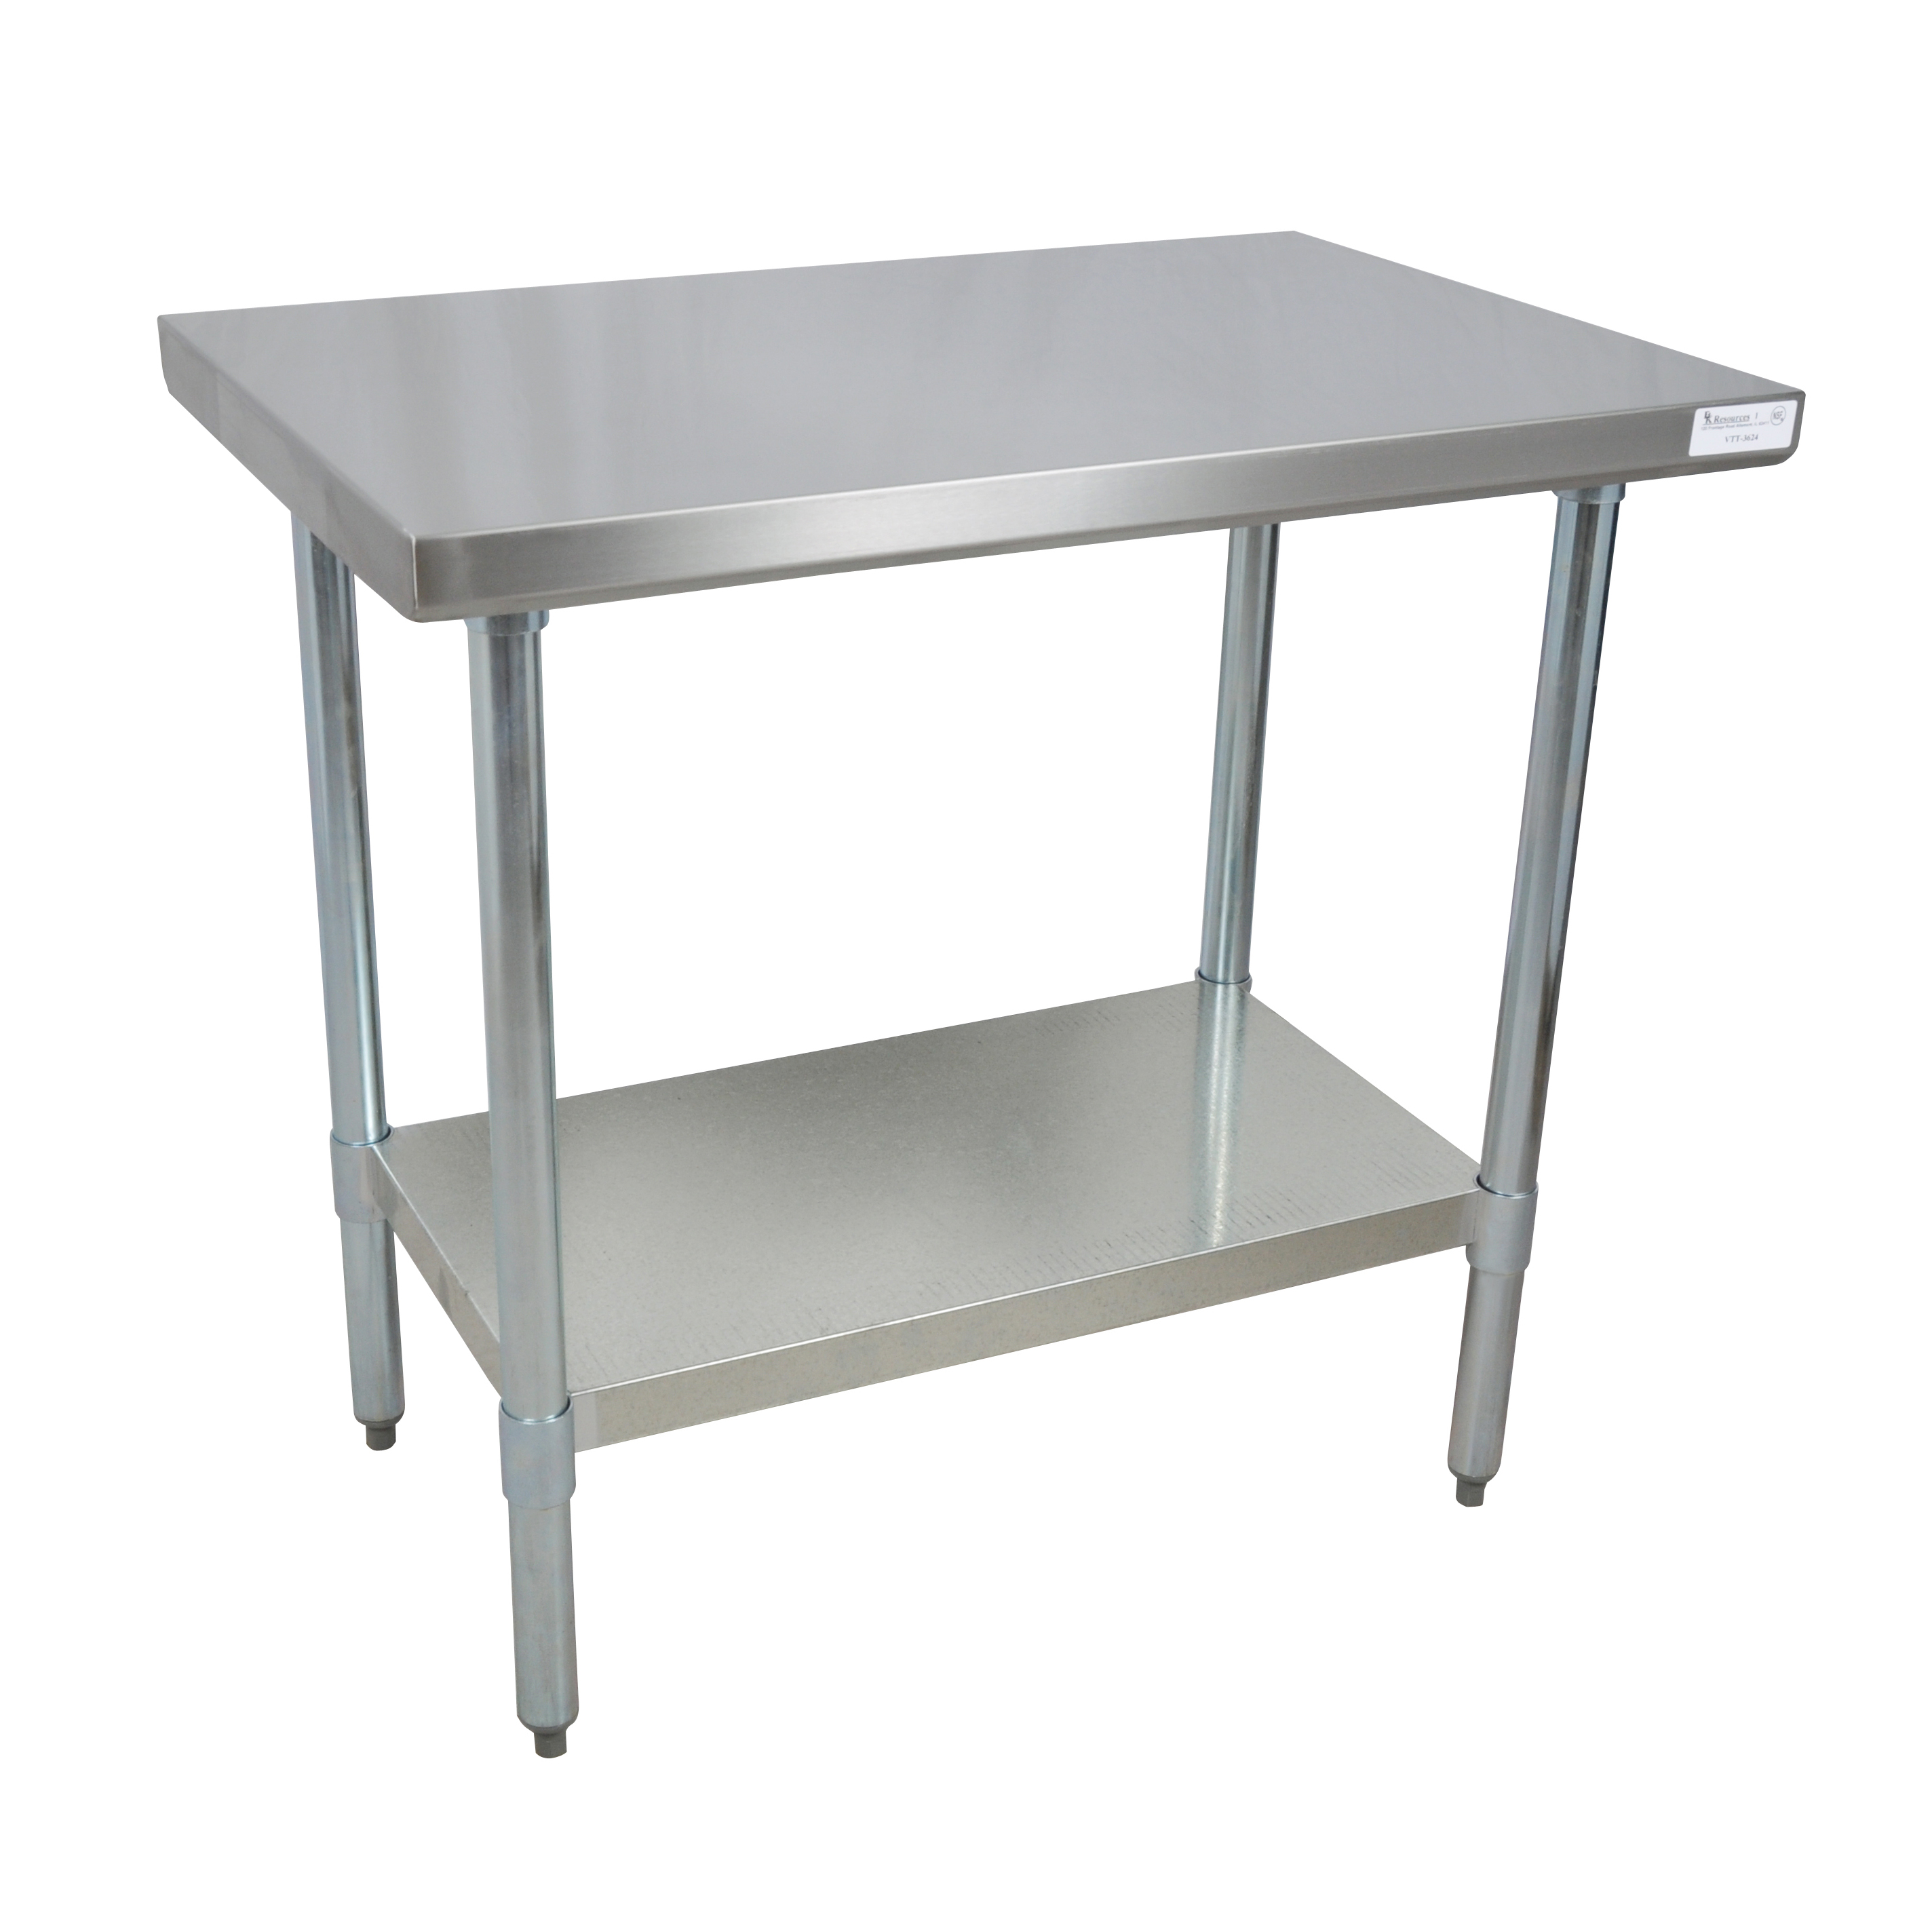 BK Resources CTT-7224 work table,  63